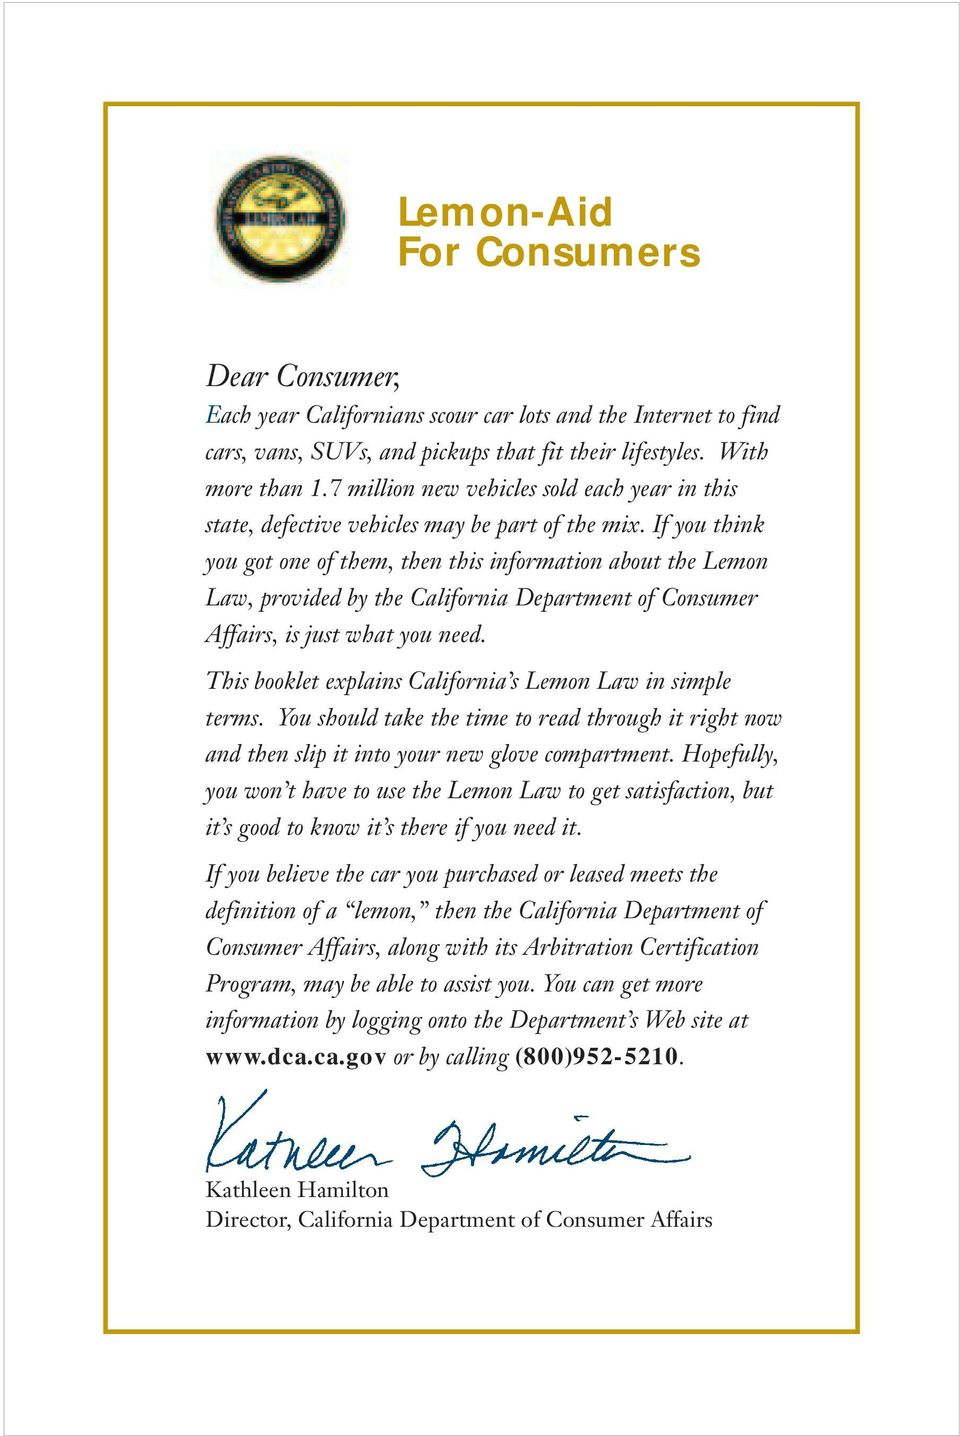 If you think you got one of them, then this information about the Lemon Law, provided by the California Department of Consumer Affairs, is just what you need.